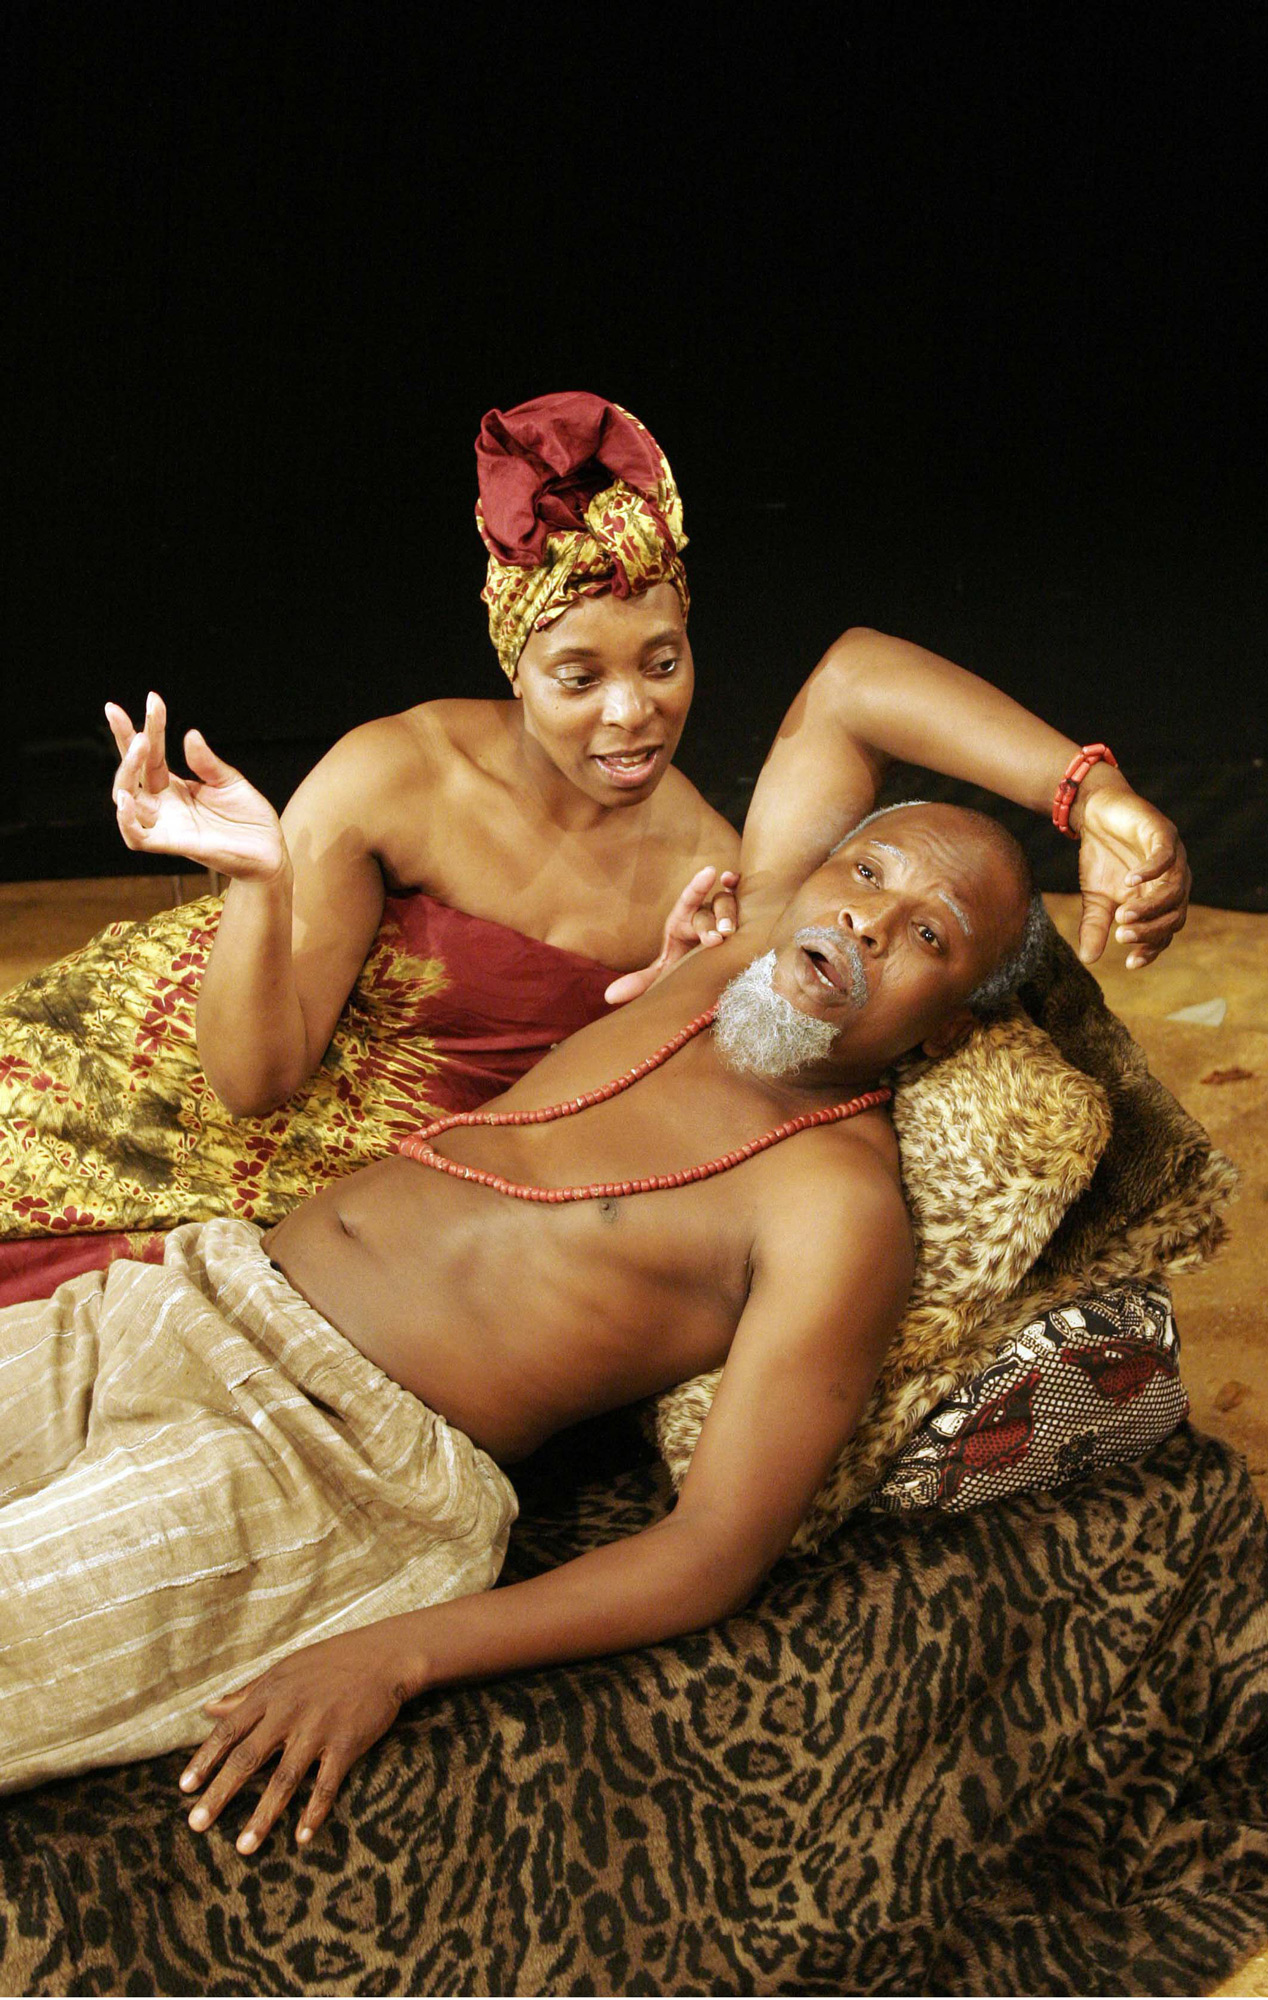 Colour photograph of Louisa Eyo as Favourite and Toyin Oshinaike as Baroka, both lying on a couch in conversation, in a production of The Lion and the Jewel, 2005